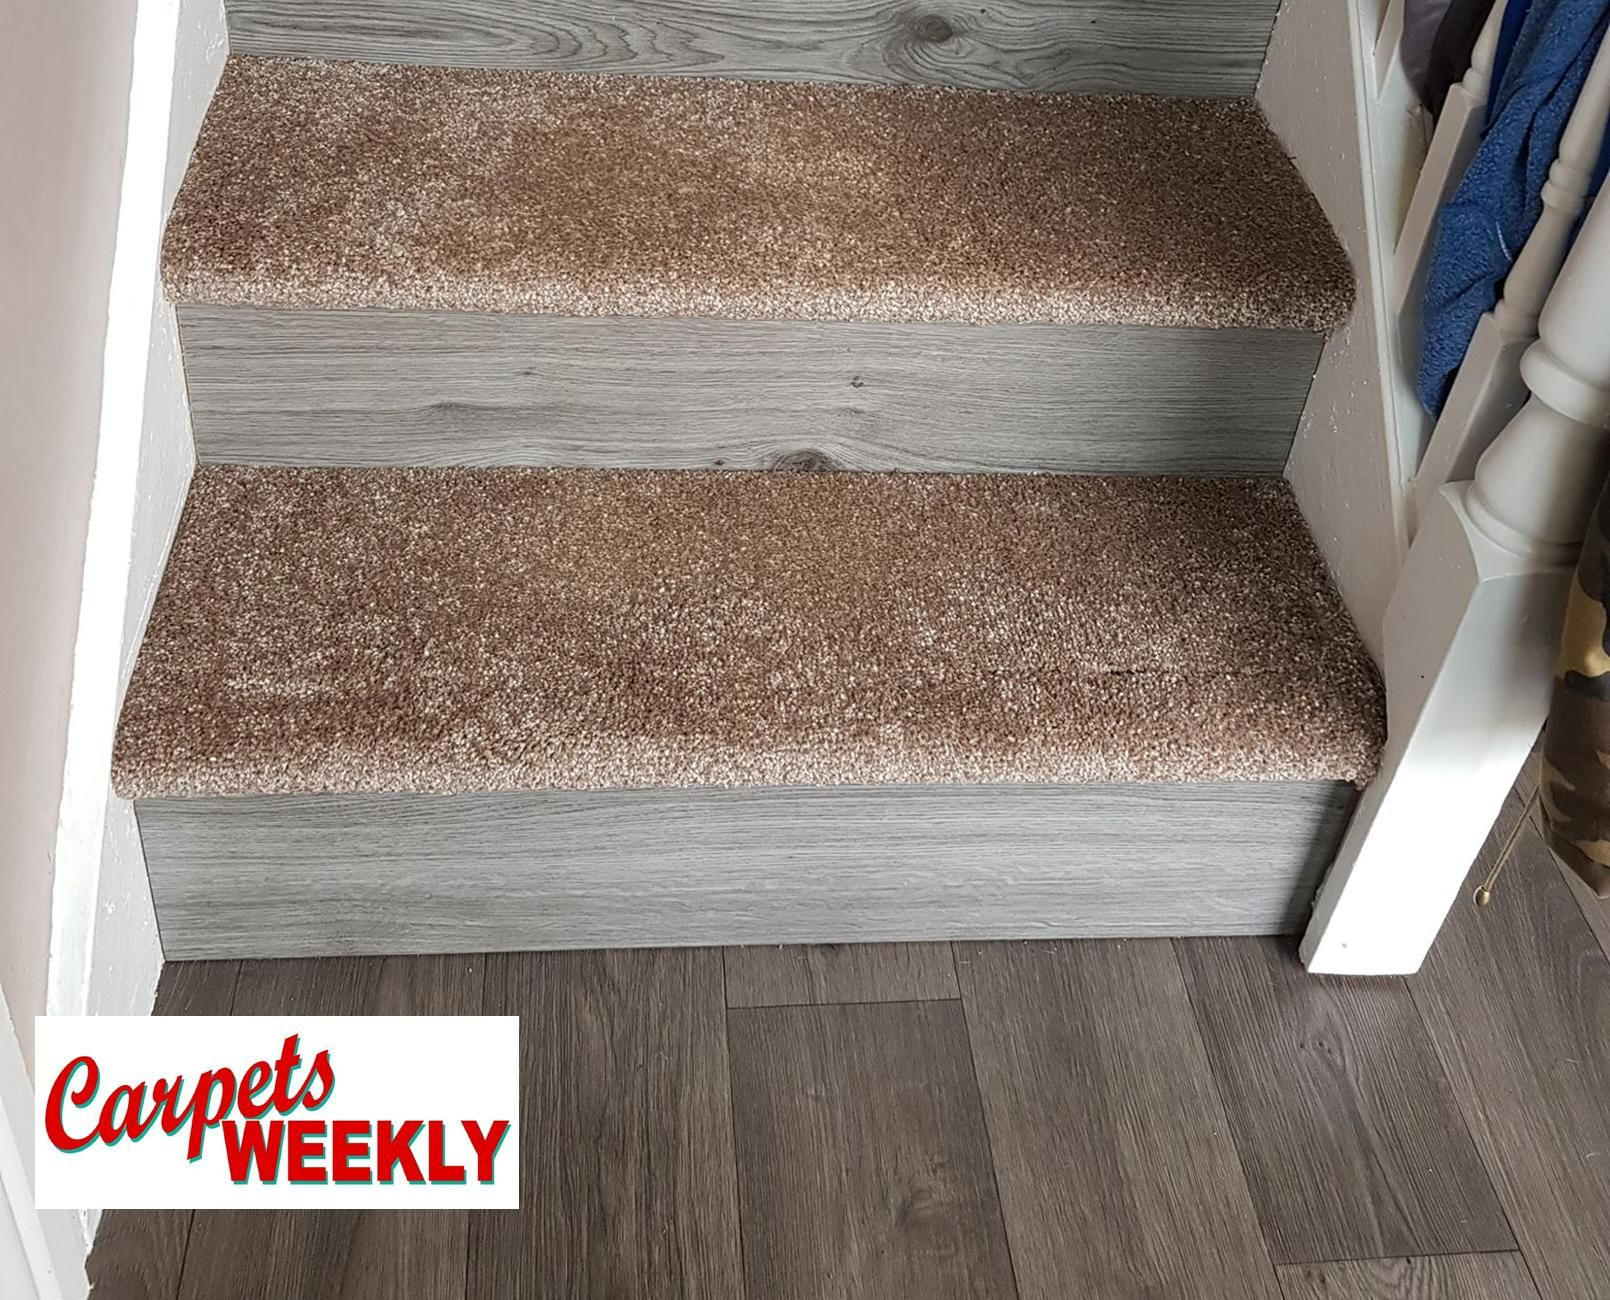 Carpets Weekly, Apollo Camel Carpet and Grey Oak Laminate 4